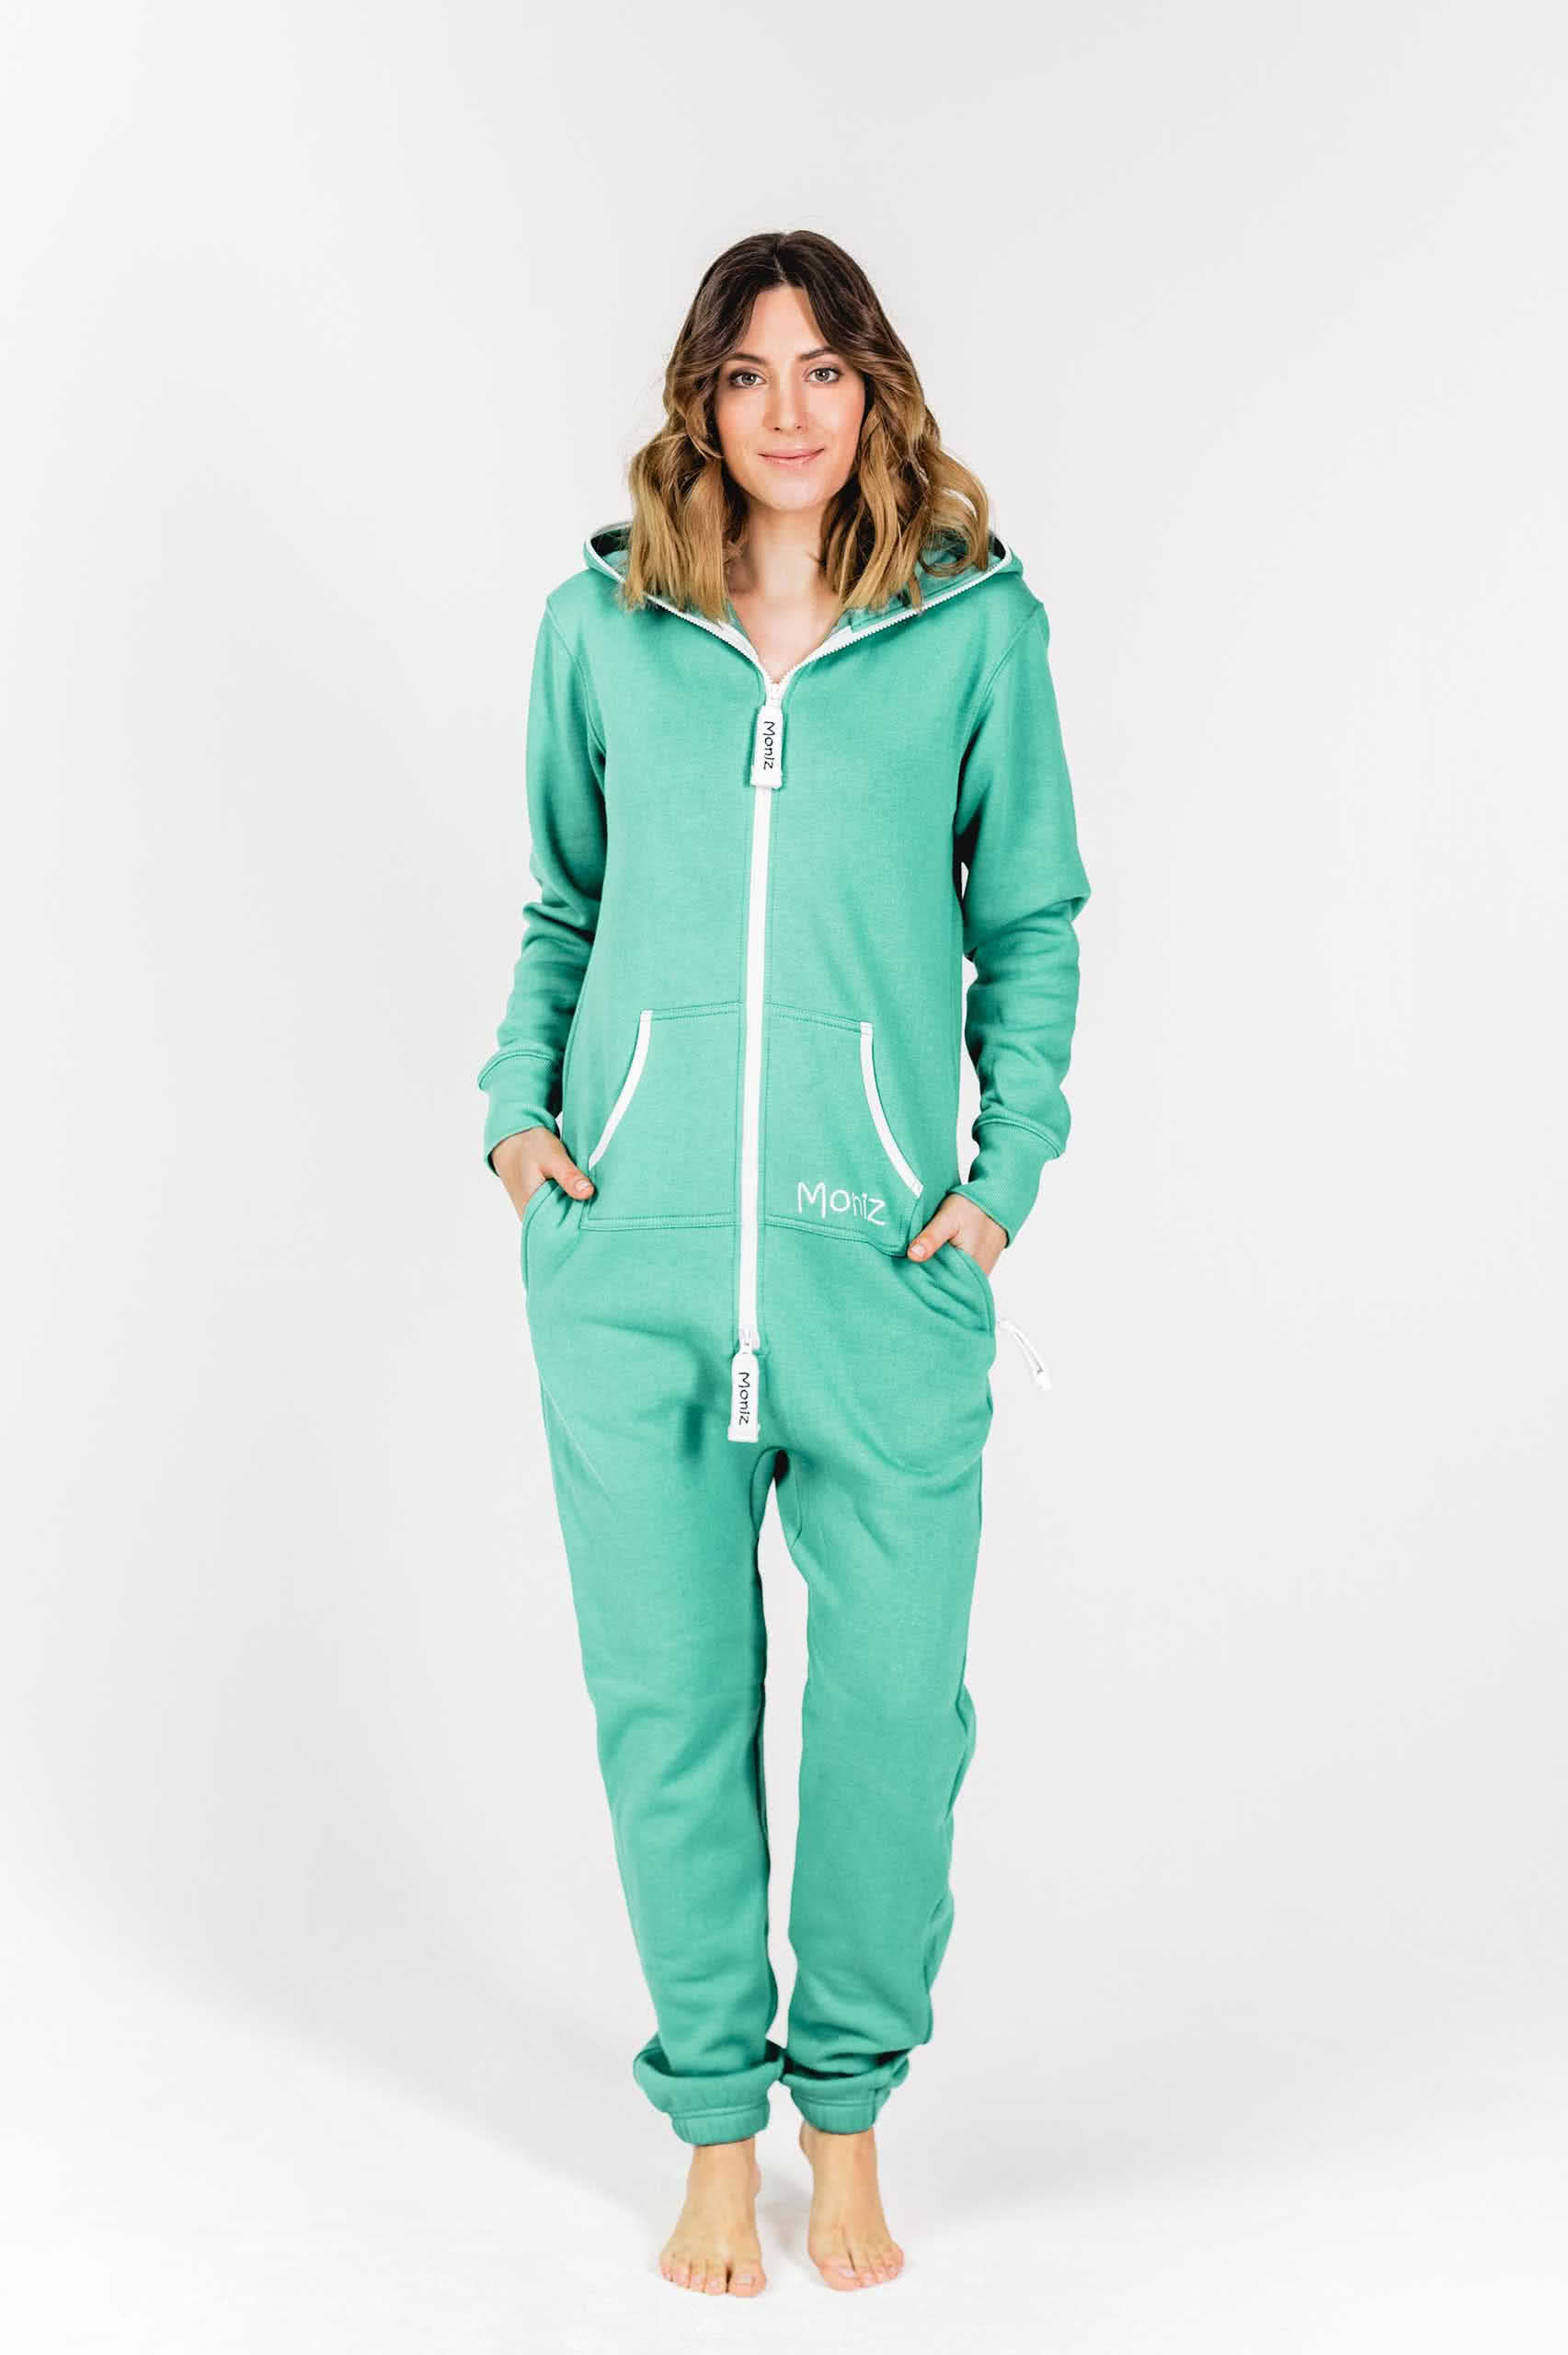 Moniz Damen Jumpsuit Mintgrün - Energetic Mint